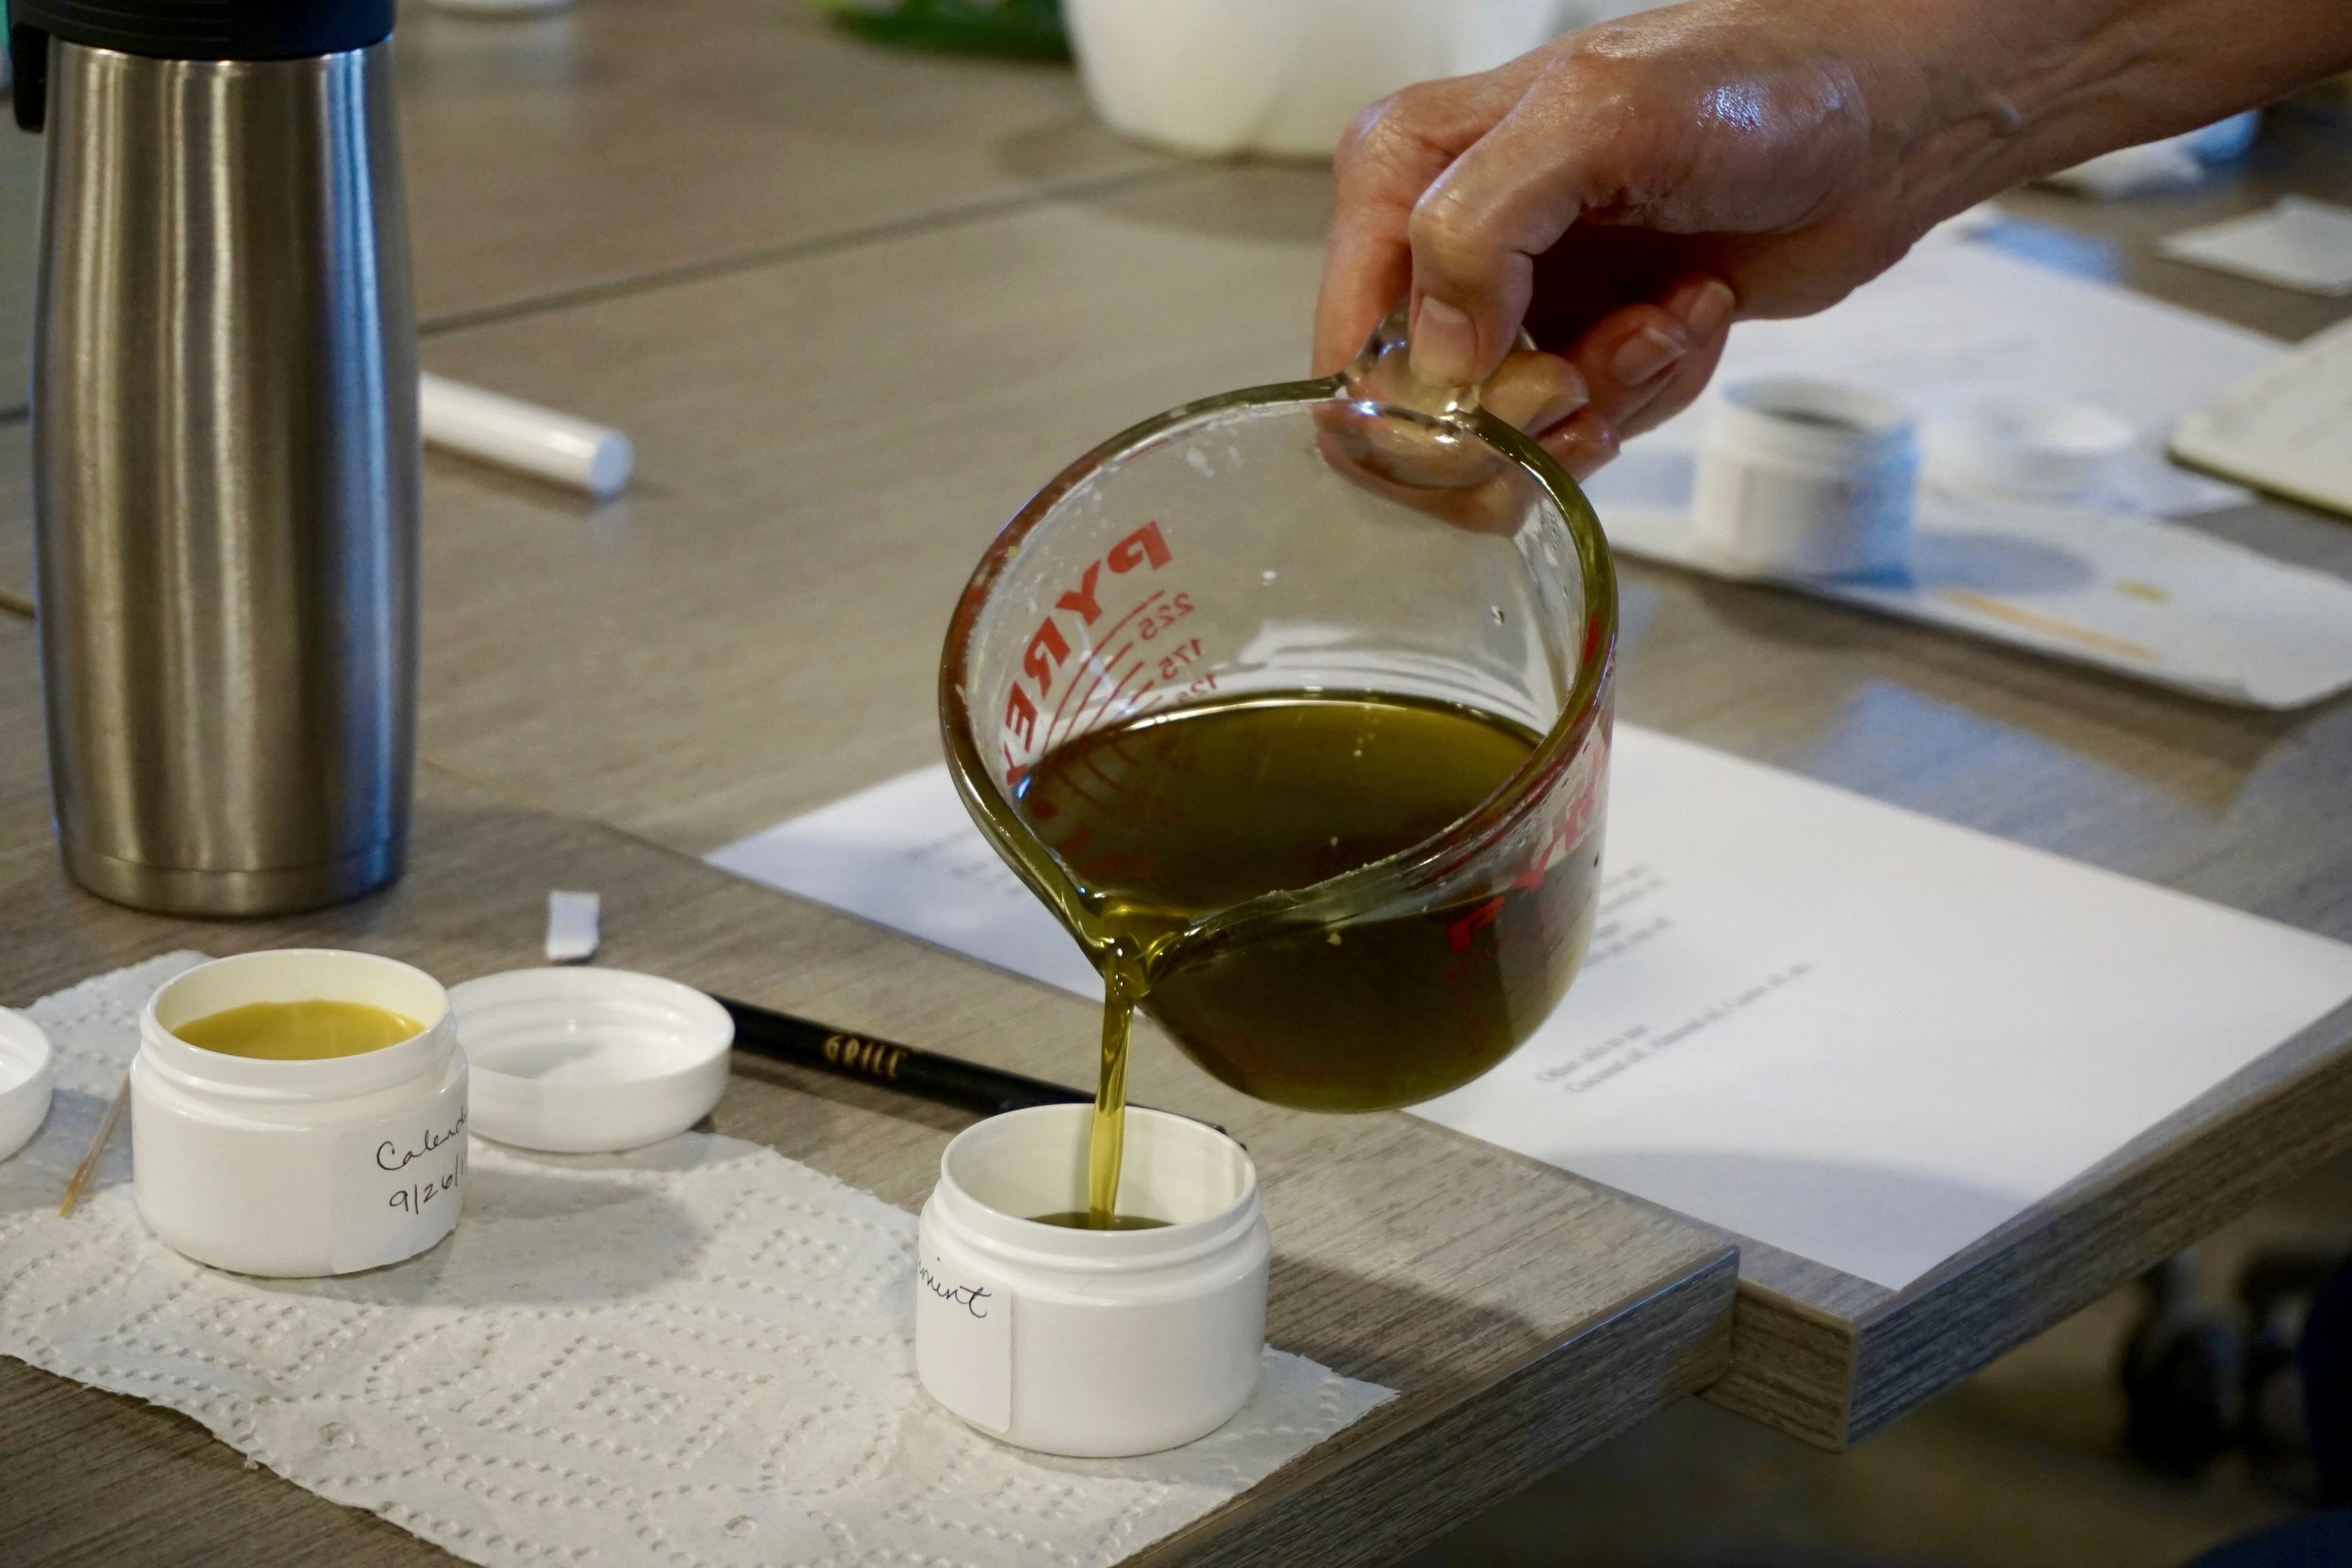 Above: Comfrey salve being poured into a container